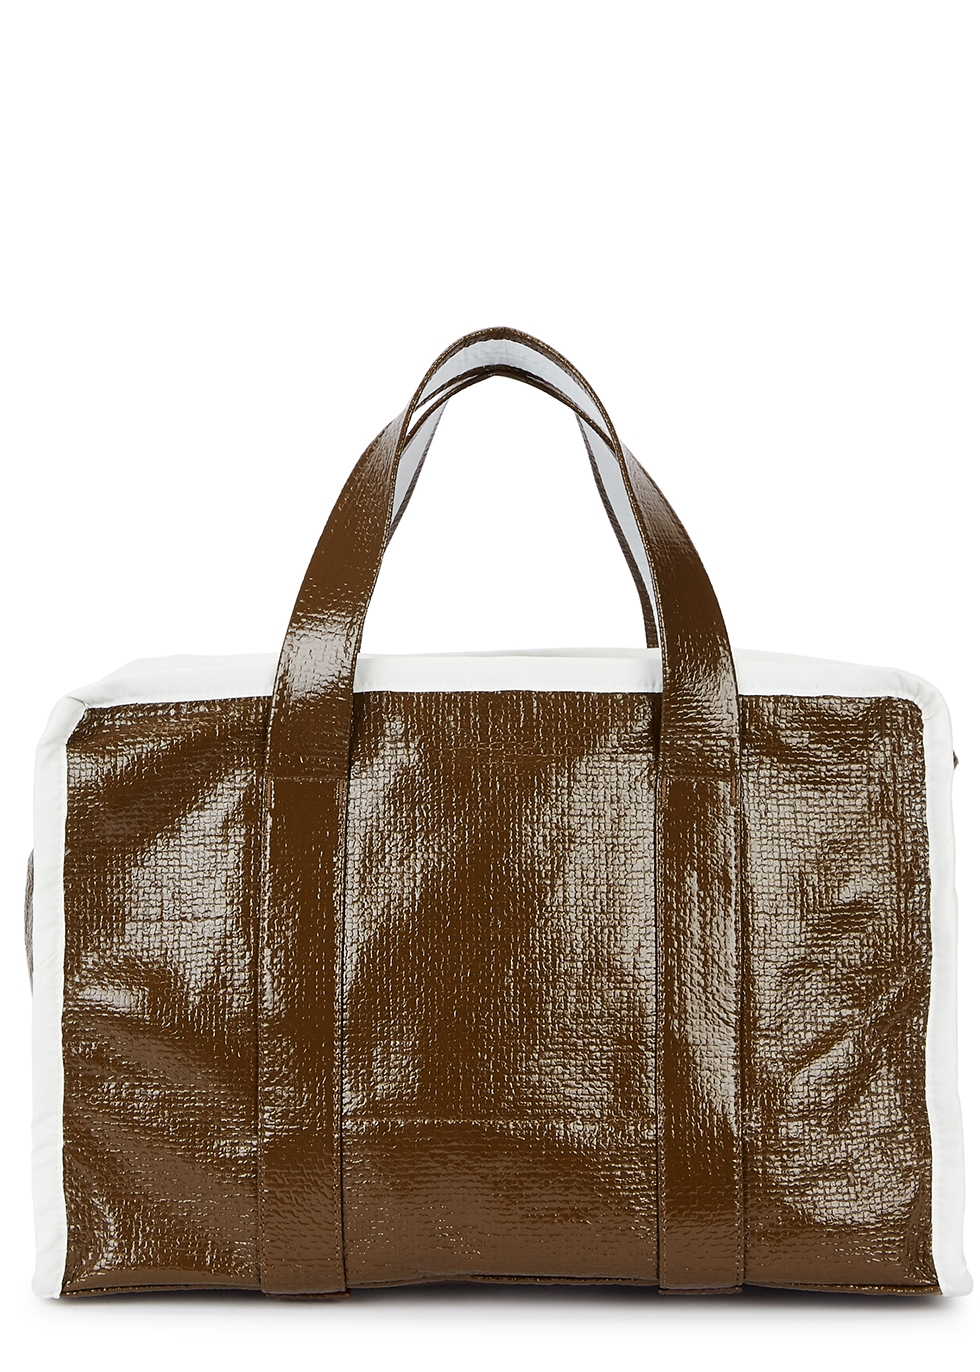 Small brown textured coated tote